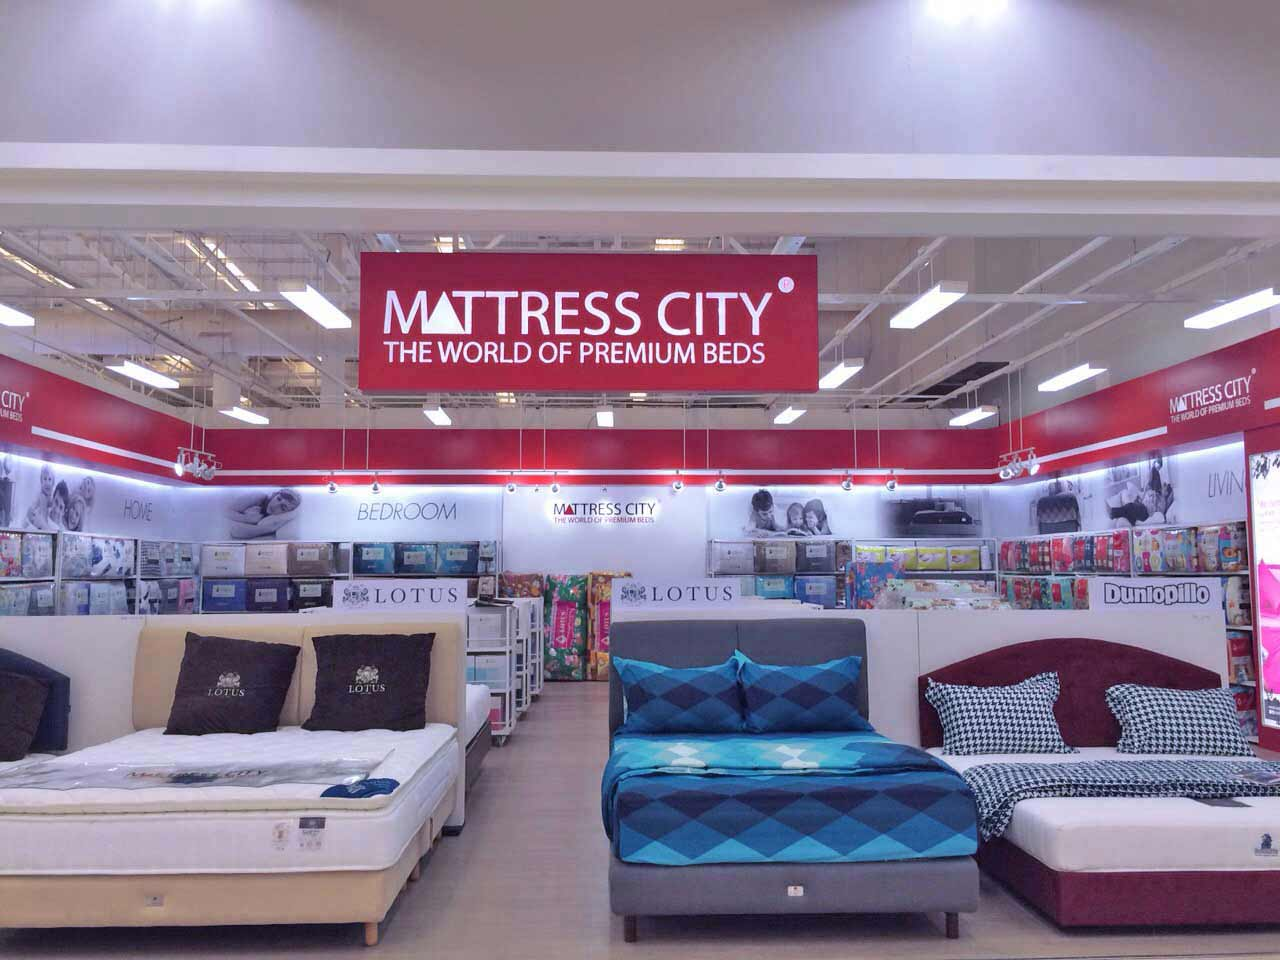 Mattress City - Tesco Lotus Bangkapi